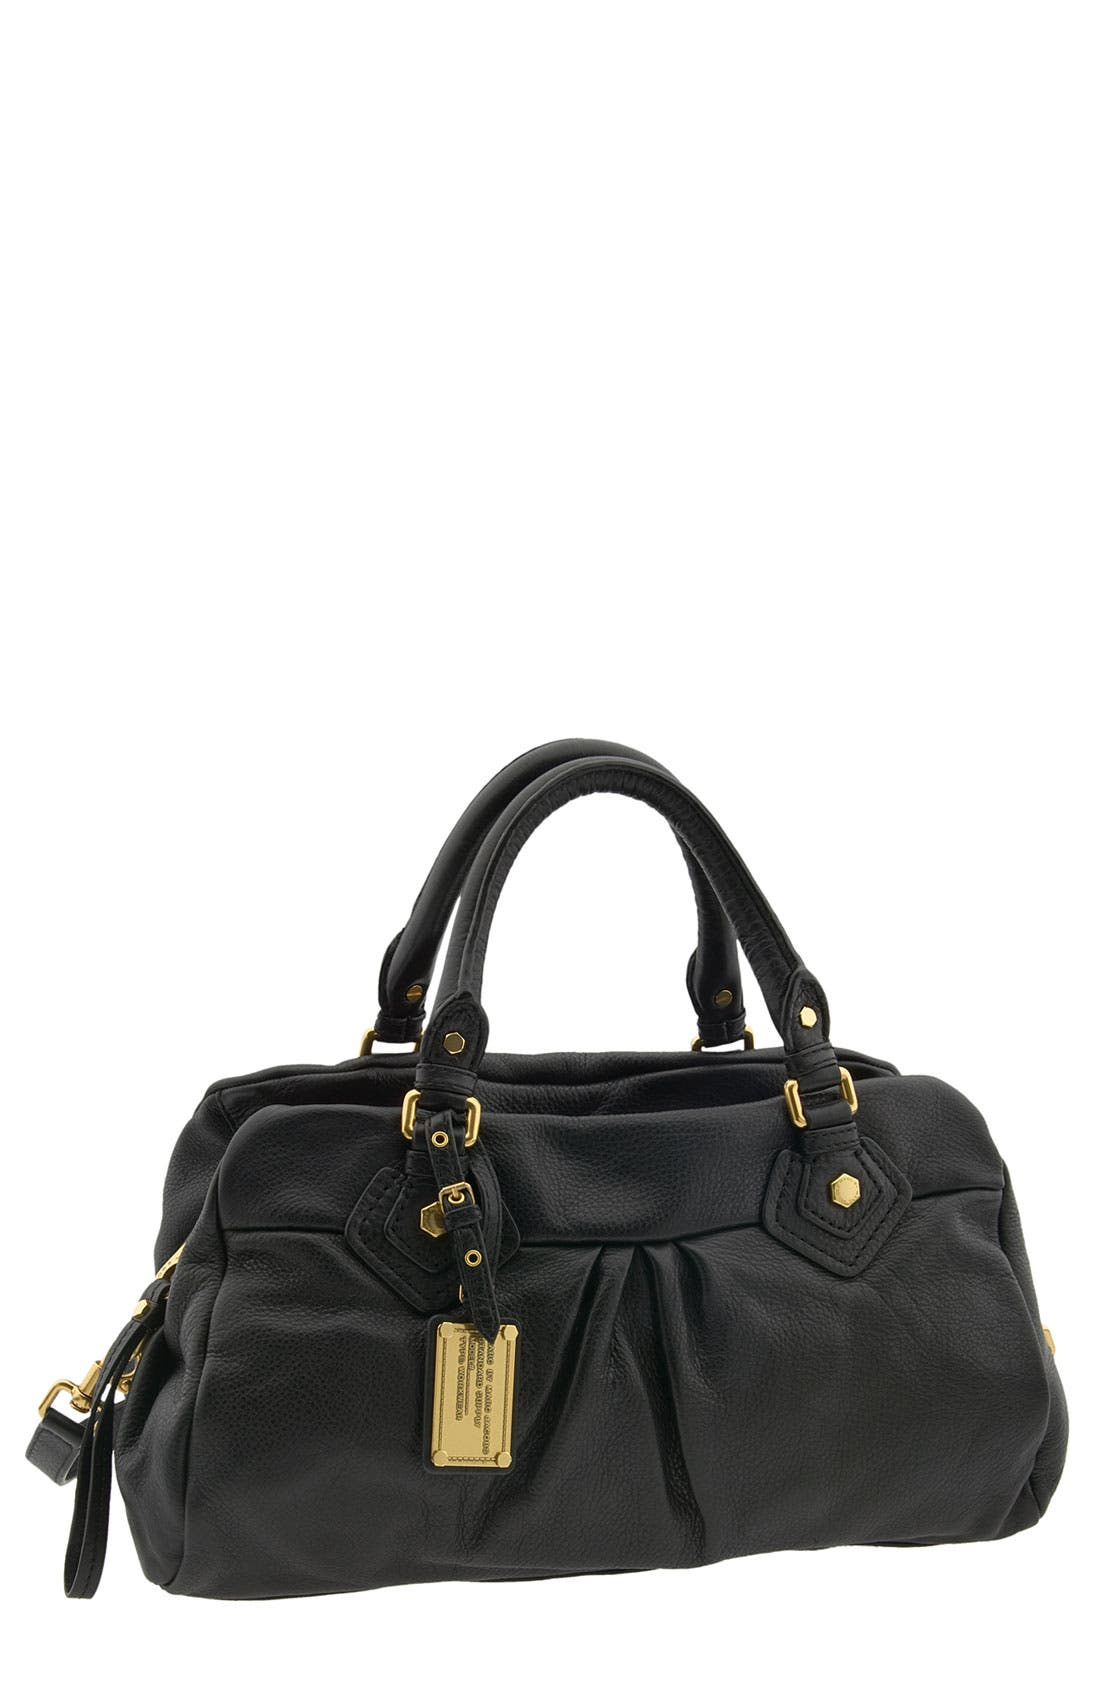 MARC BY MARC JACOBS 'Classic Q - Groovee' Satchel,                             Main thumbnail 1, color,                             001